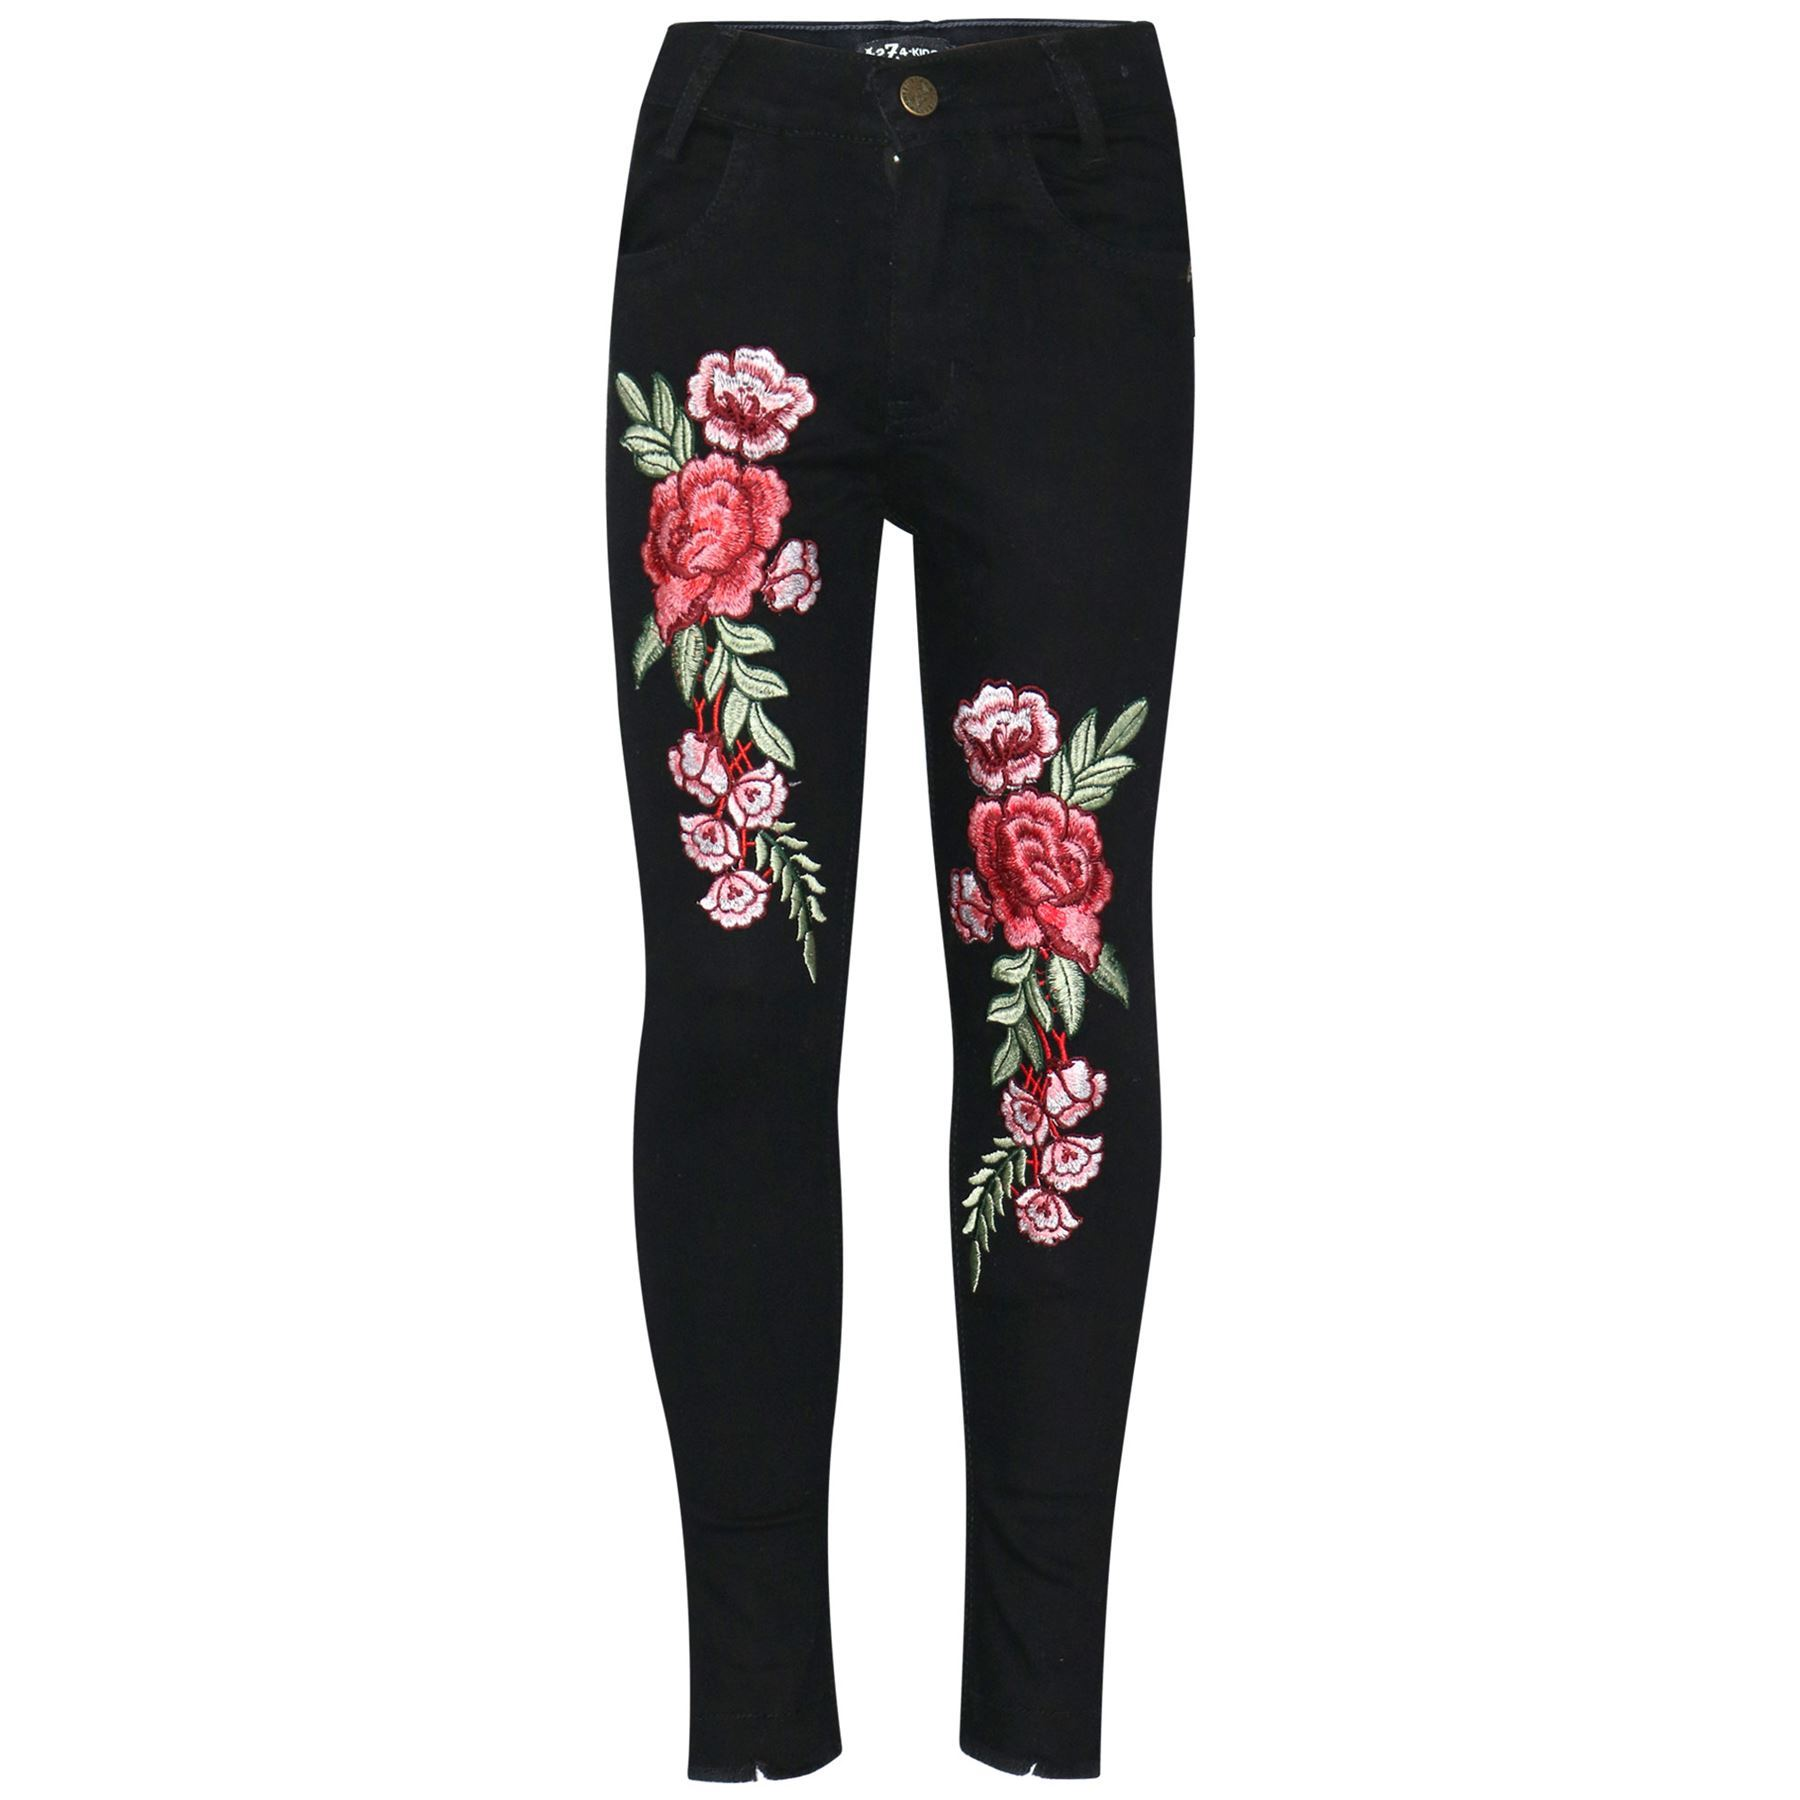 Enfants-Filles-Extensible-Jeans-roses-brode-Noir-Denim-Pantalon-Jeggings